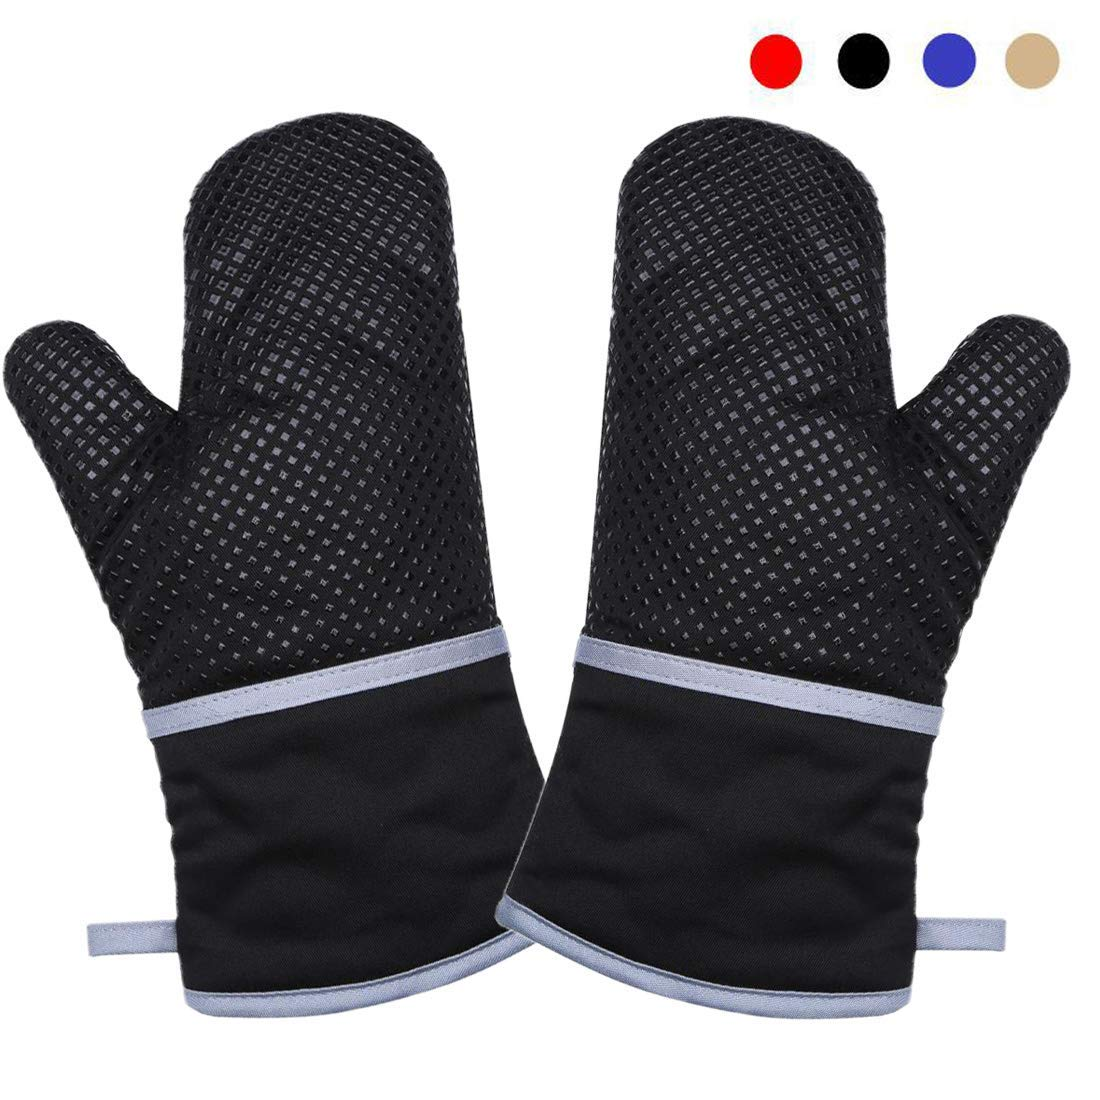 """DoMii 13"""" Long Kitchen Oven Mitts with Non-Slip Silicone Grip Heat Resistant Oven Gloves for Cooking and Baking, 1 Pair Black"""